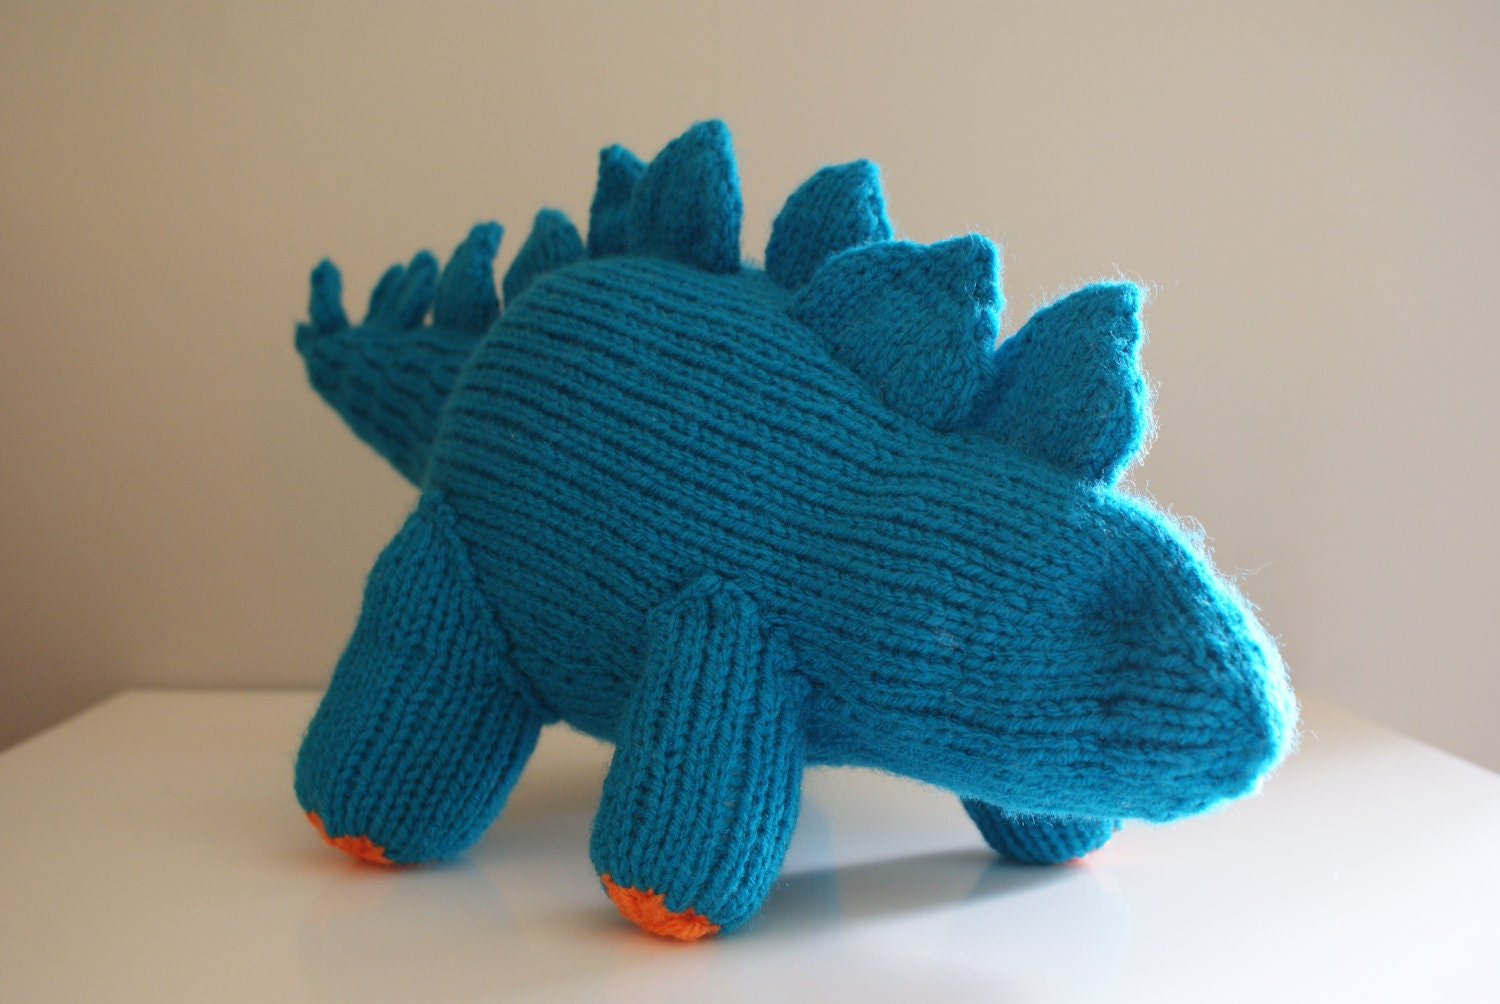 Knit Dinosaur Pattern : DIY Knitting PATTERN Stegosaurus Dinosaur Stuffed Animal